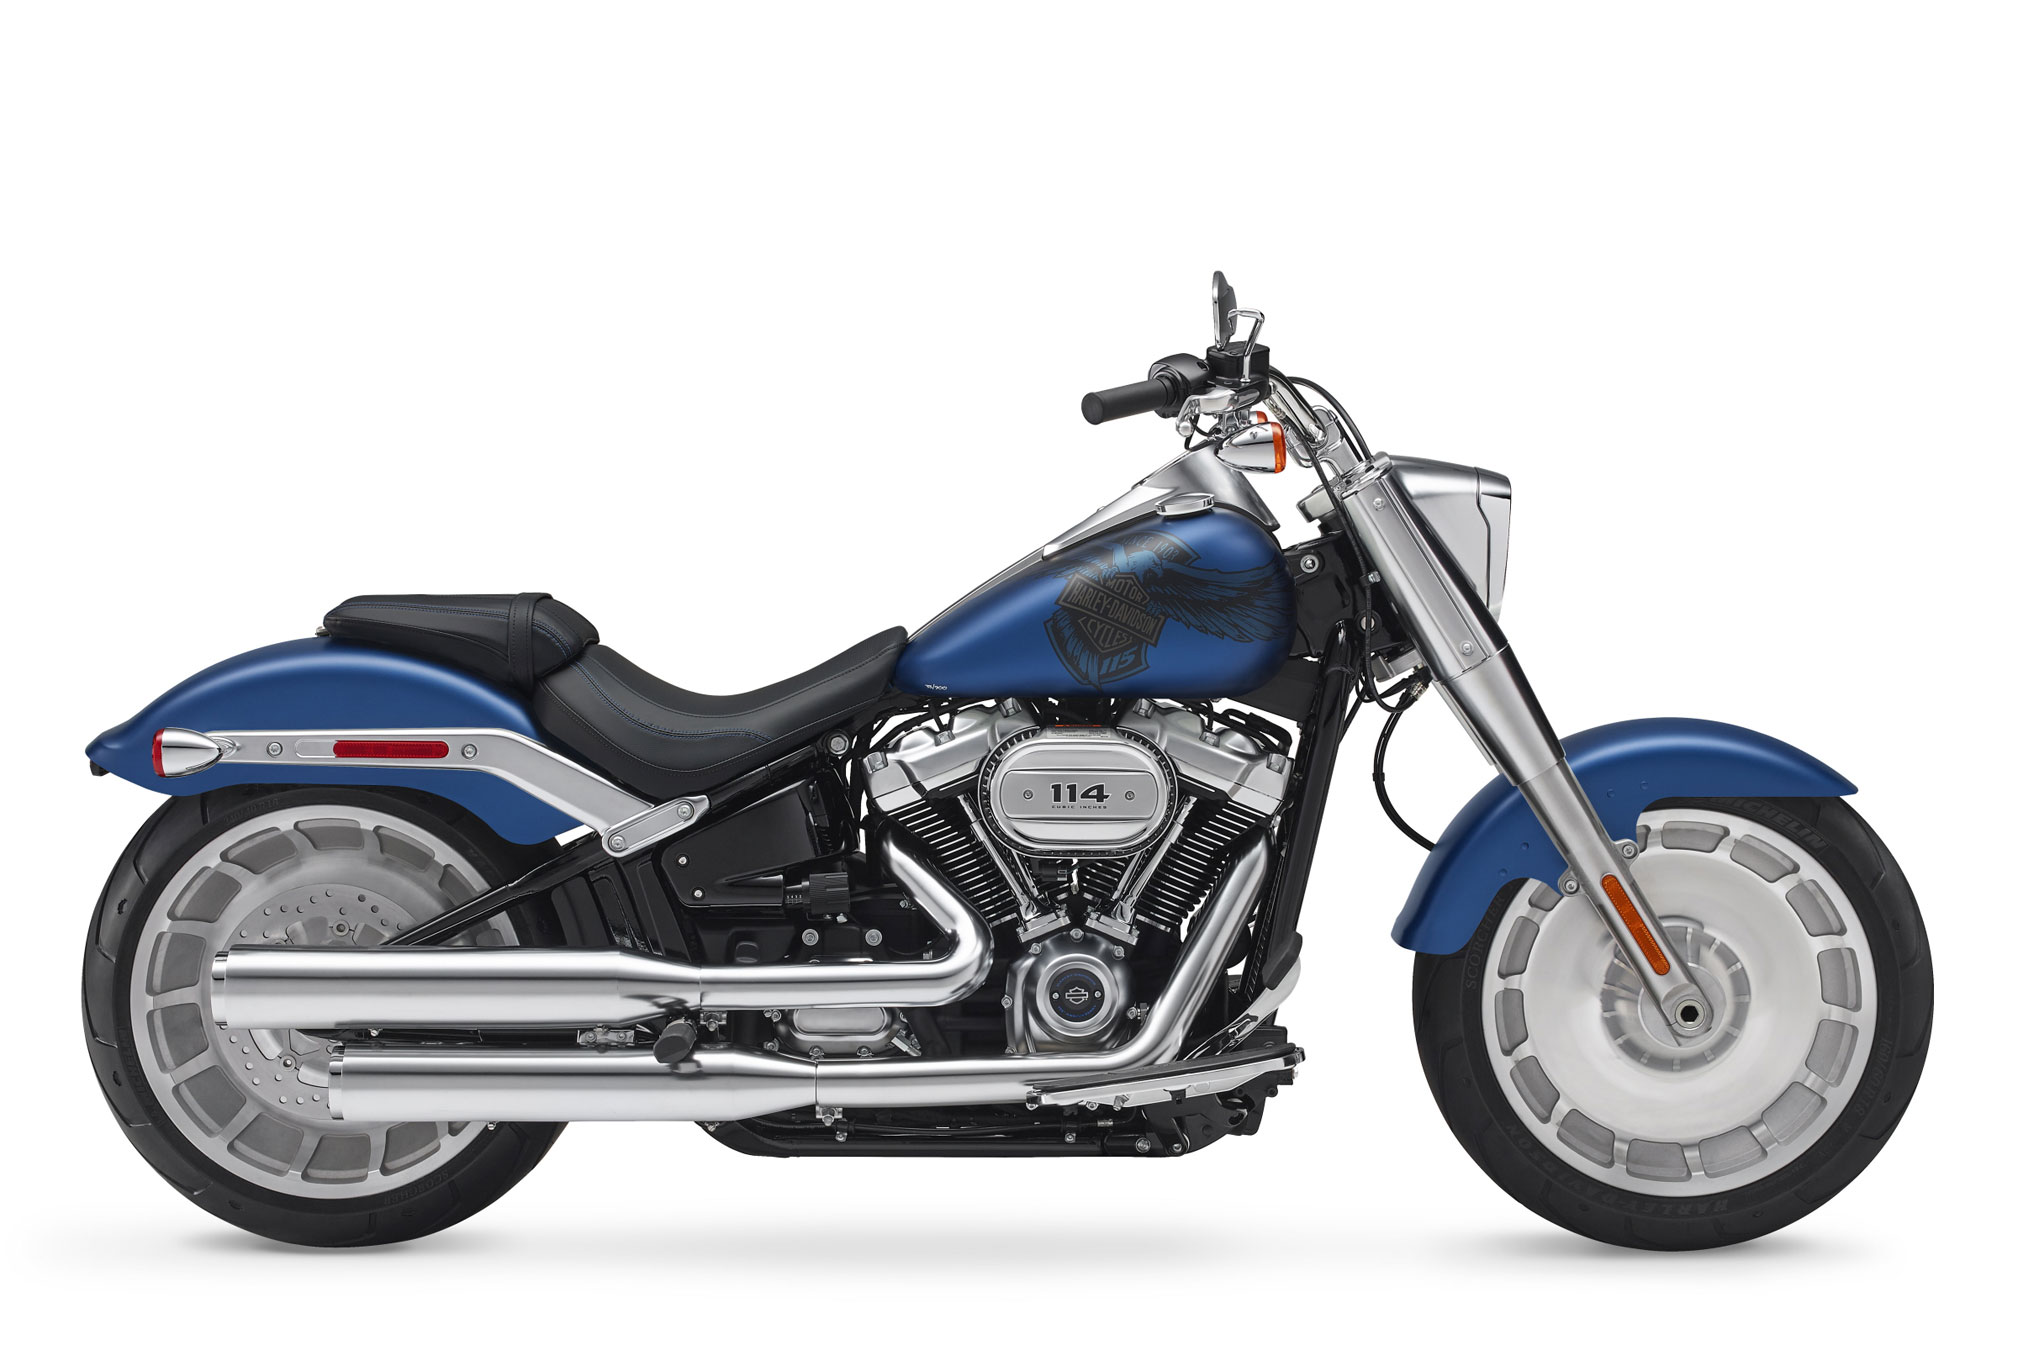 2018 harley davidson fat boy 115th anniversary anx review totalmotorcycle. Black Bedroom Furniture Sets. Home Design Ideas